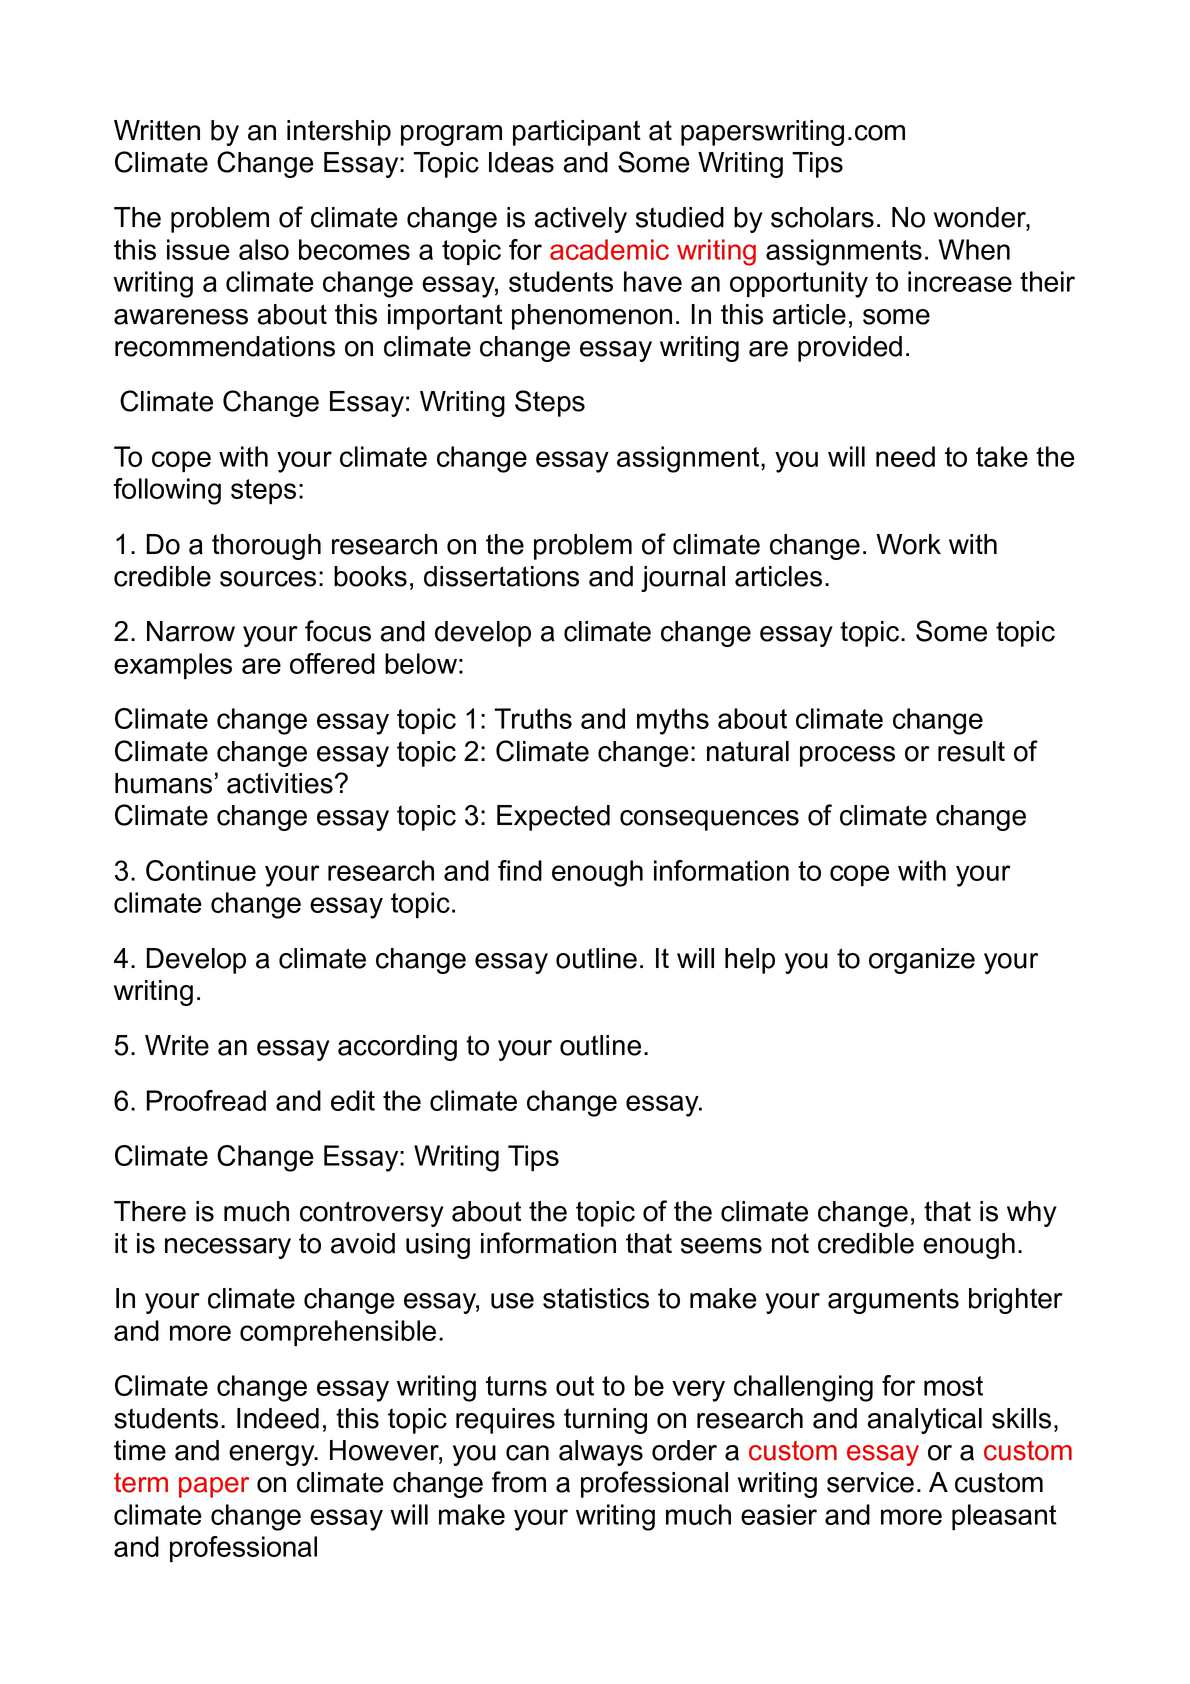 002 Climate Change Research Paper Topic Essay Topics Uncategorized Global Warming Ways To St Oracleboss Wonderful For Full